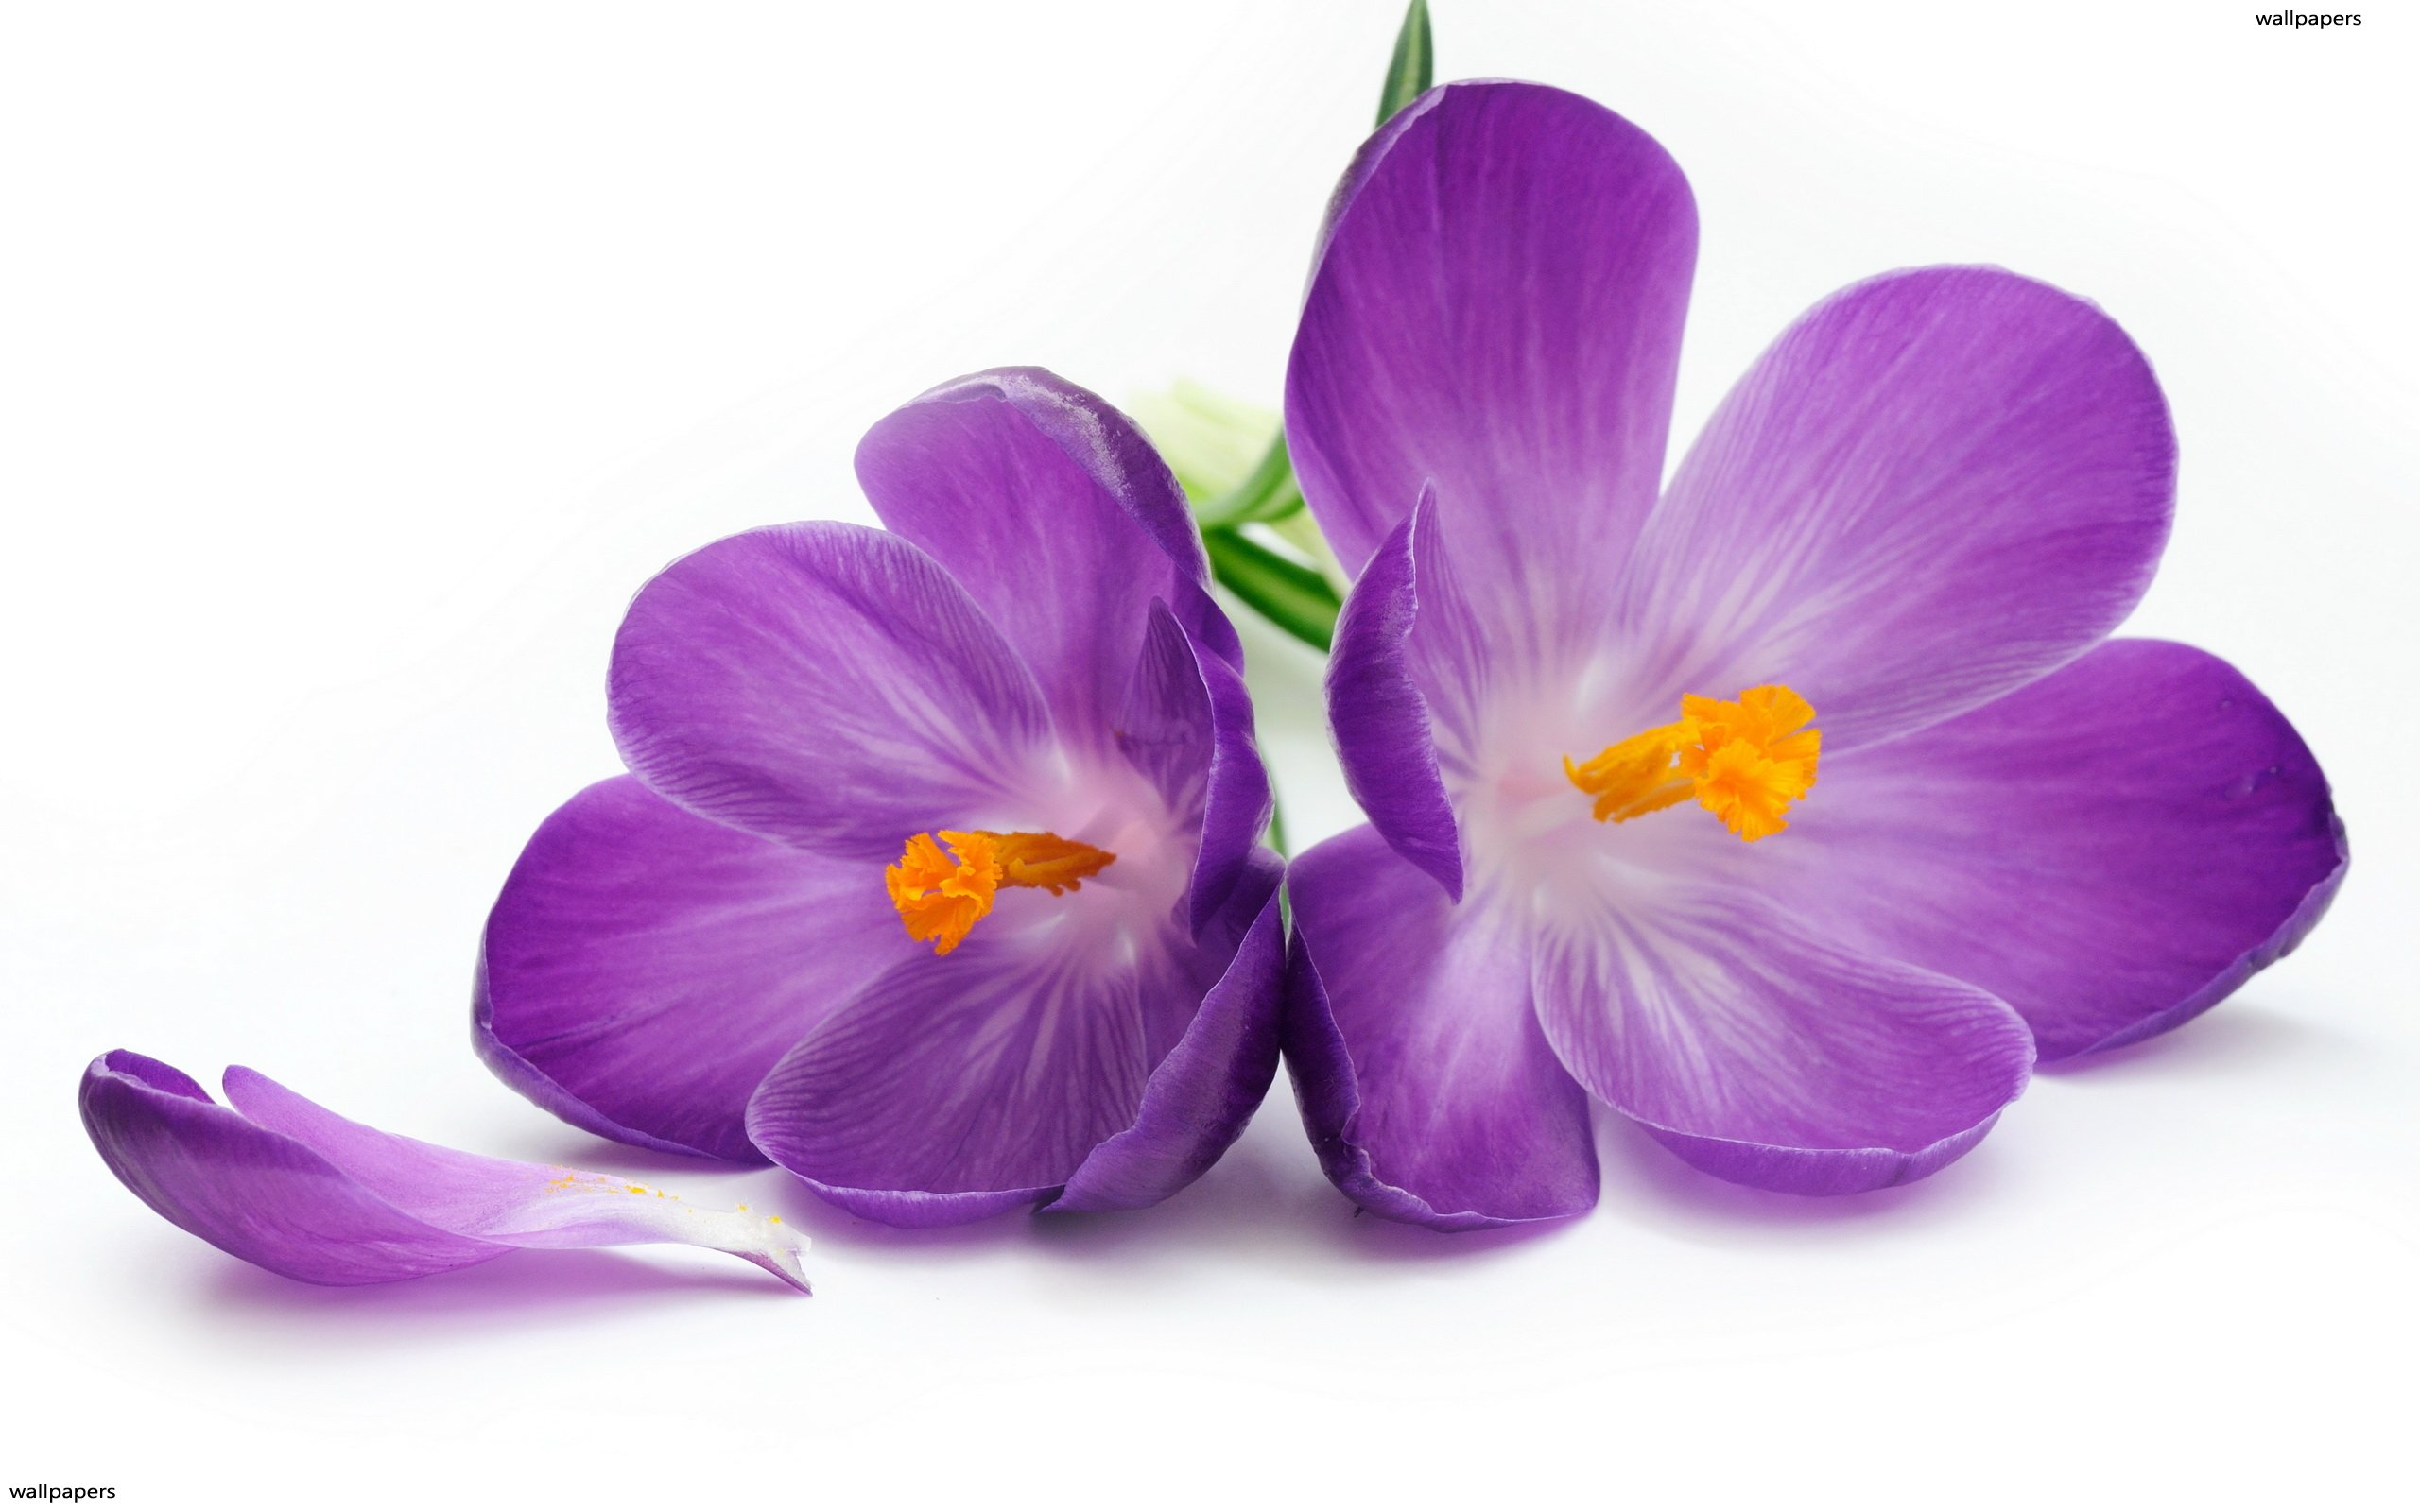 Stunning Fall Wallpapers Violet Flower Wallpapers Hd Wallpapers Pulse